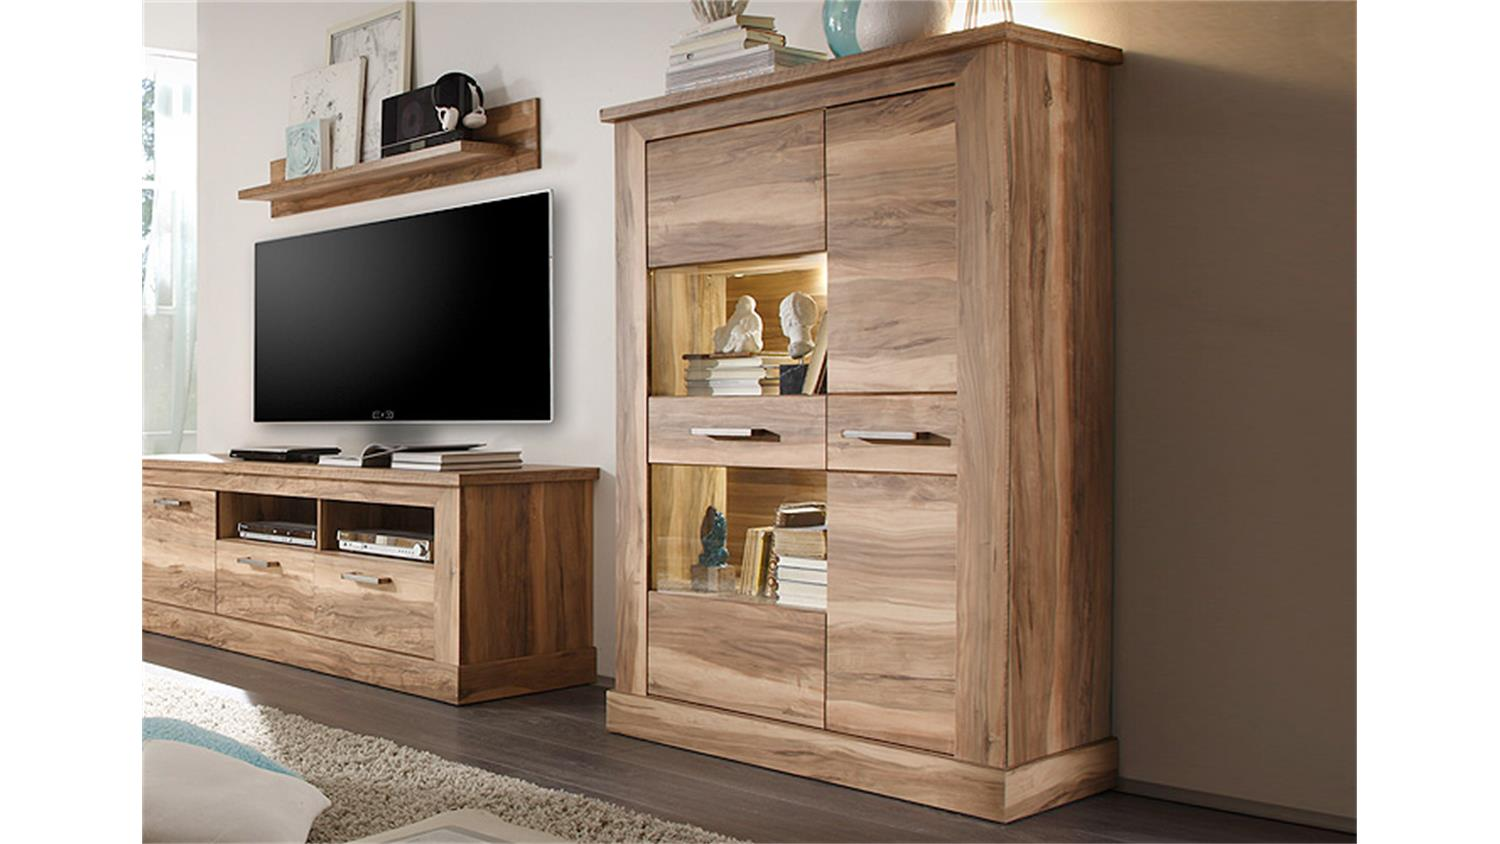 highboard 1 montreal schrank vitrine in nussbaum satin. Black Bedroom Furniture Sets. Home Design Ideas